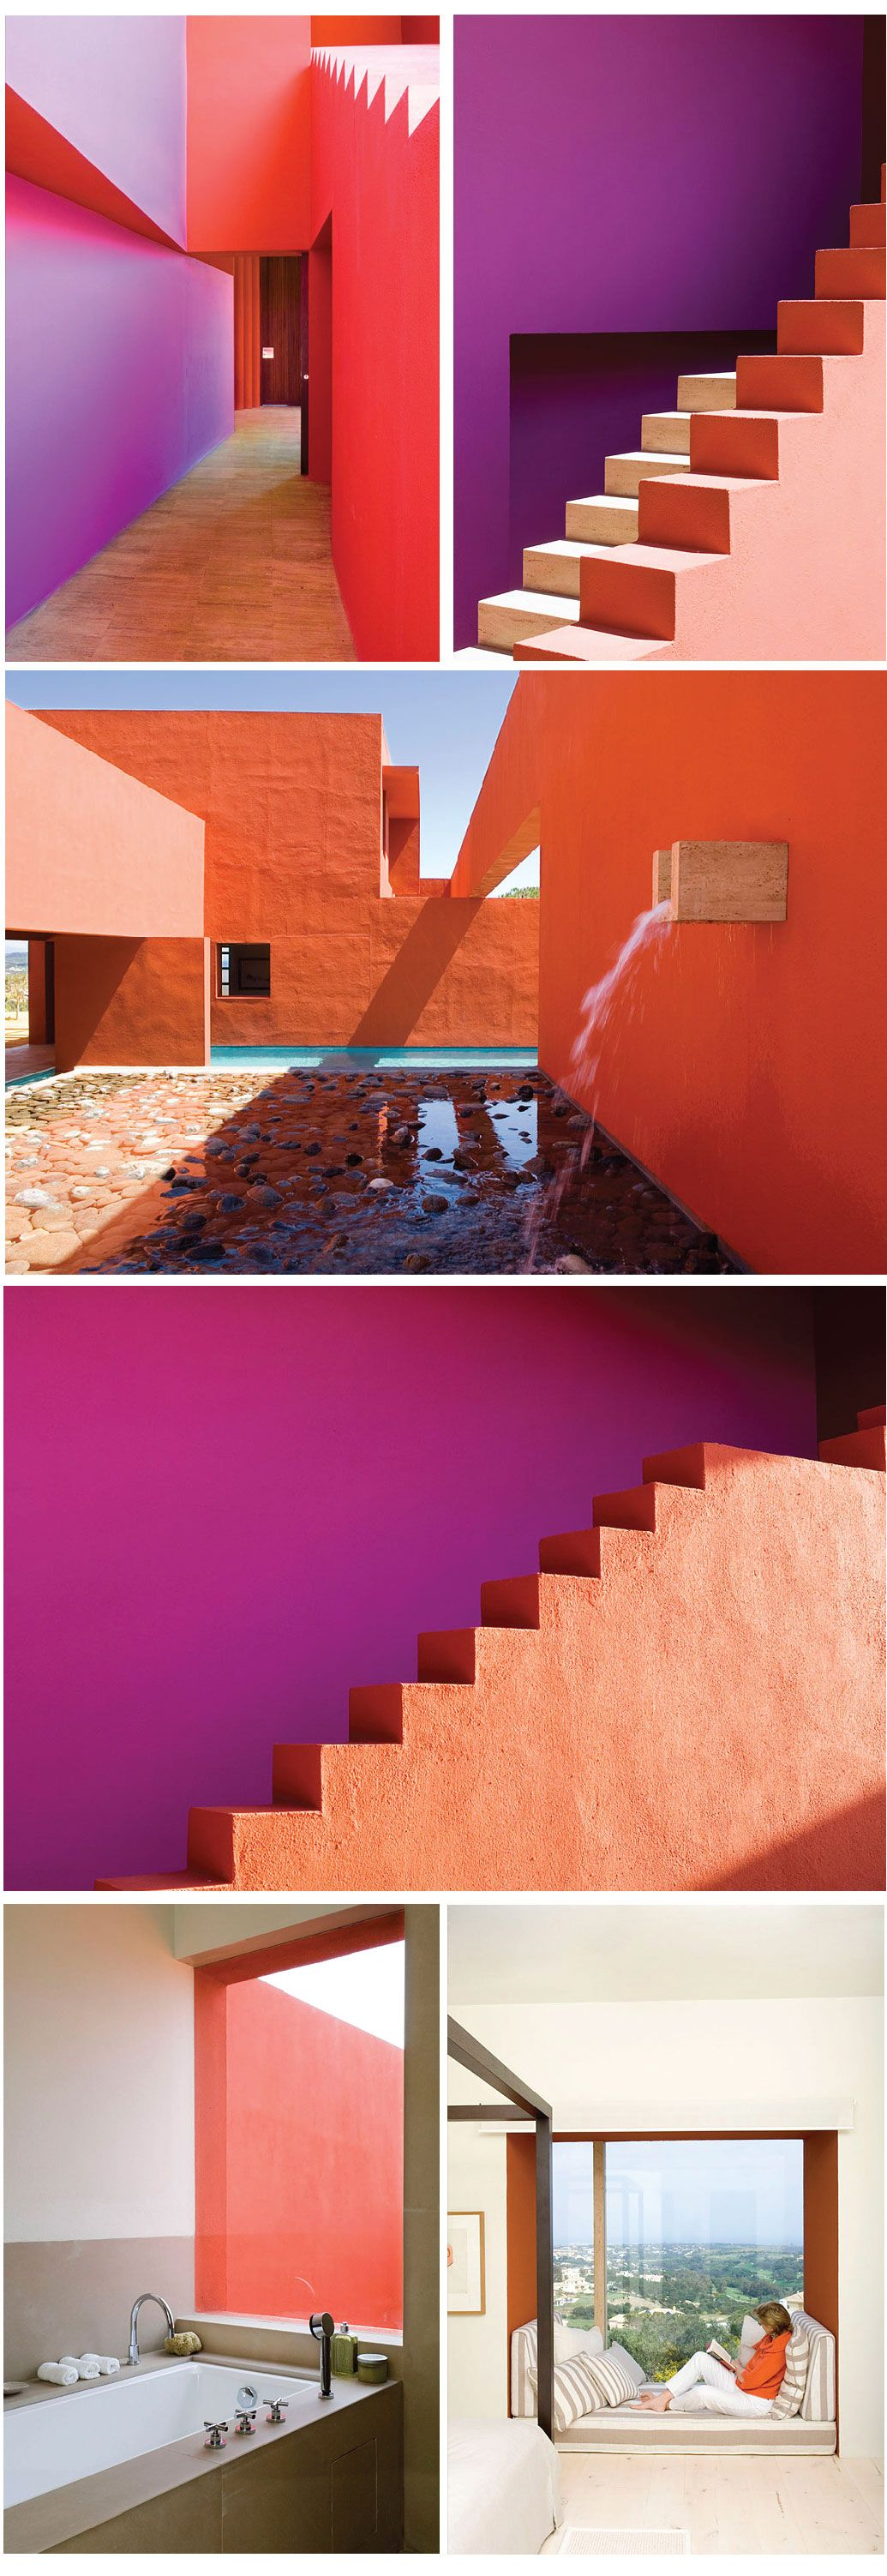 In legorreta spain luis barragan mexico cosas for Arquitectura mexicana